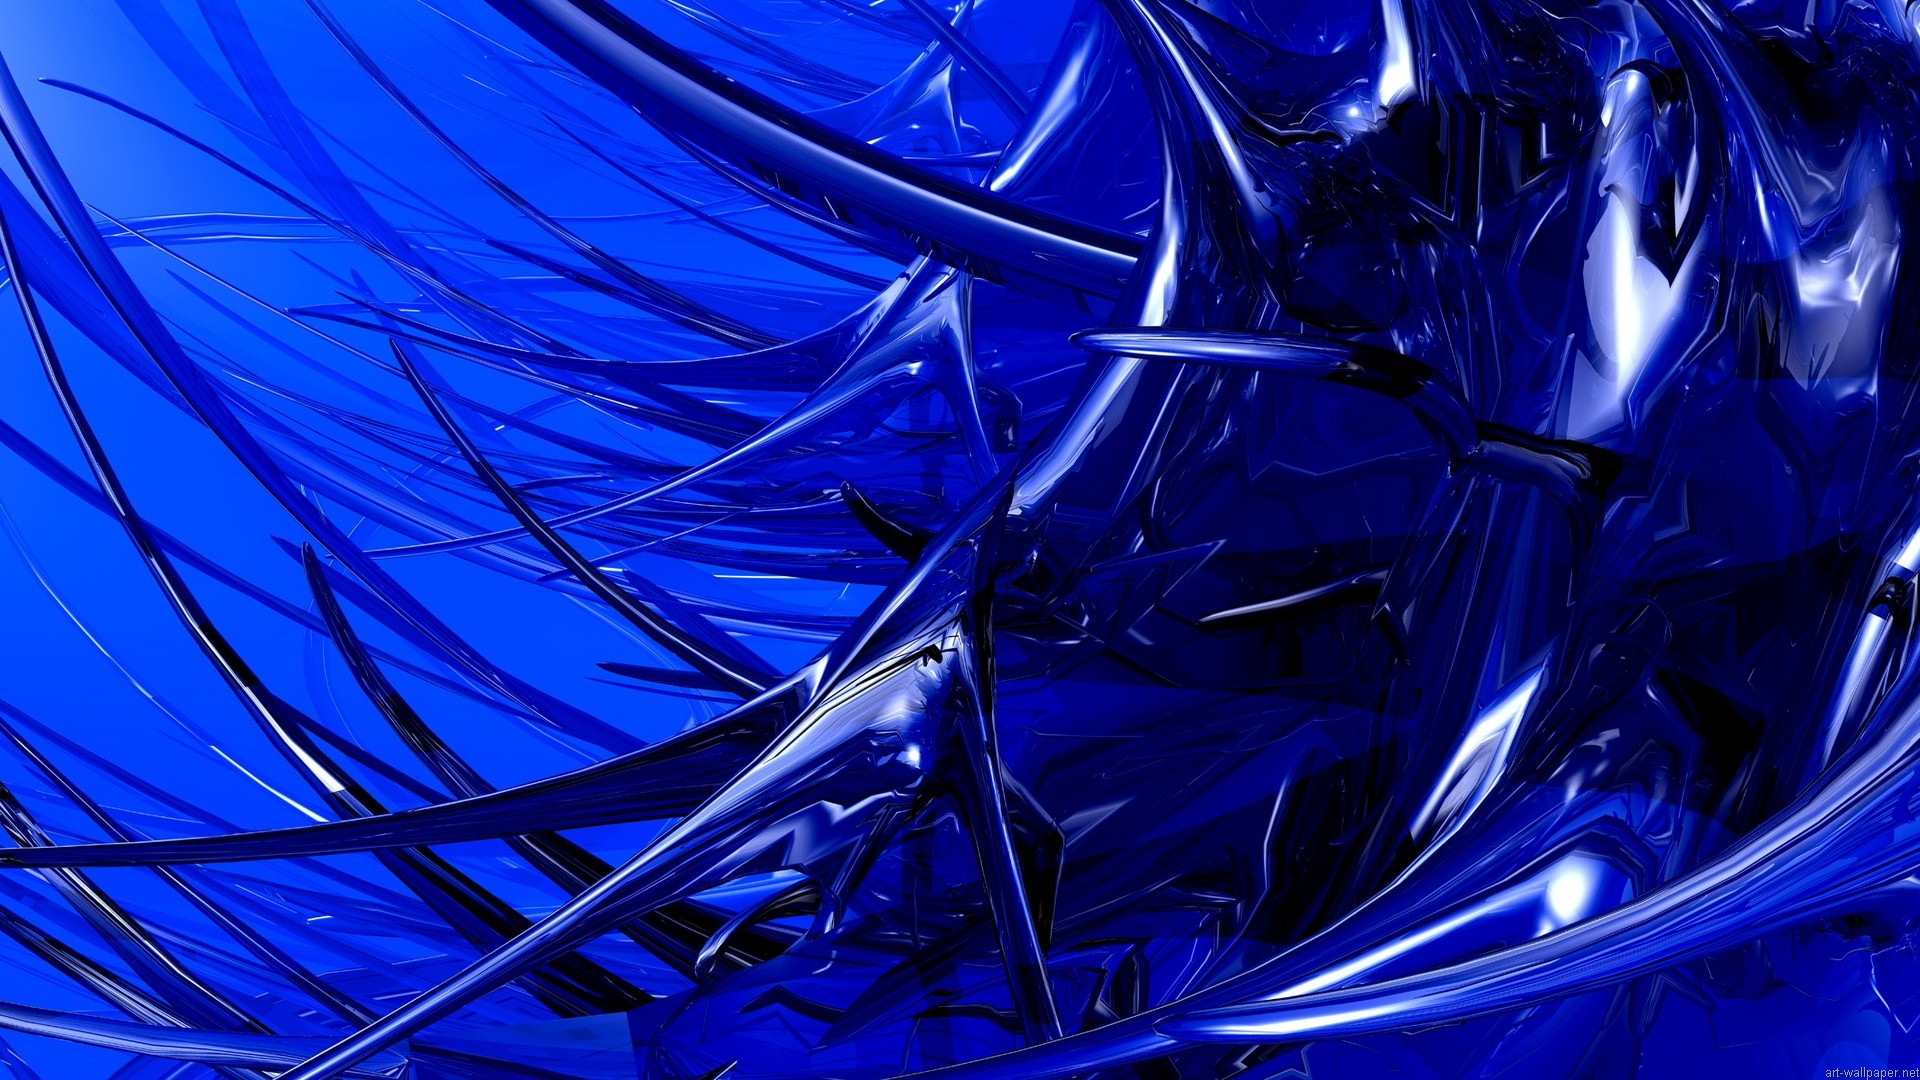 Hd Abstract Blue Background: Abstract Wallpapers And Screensavers (56+ Images